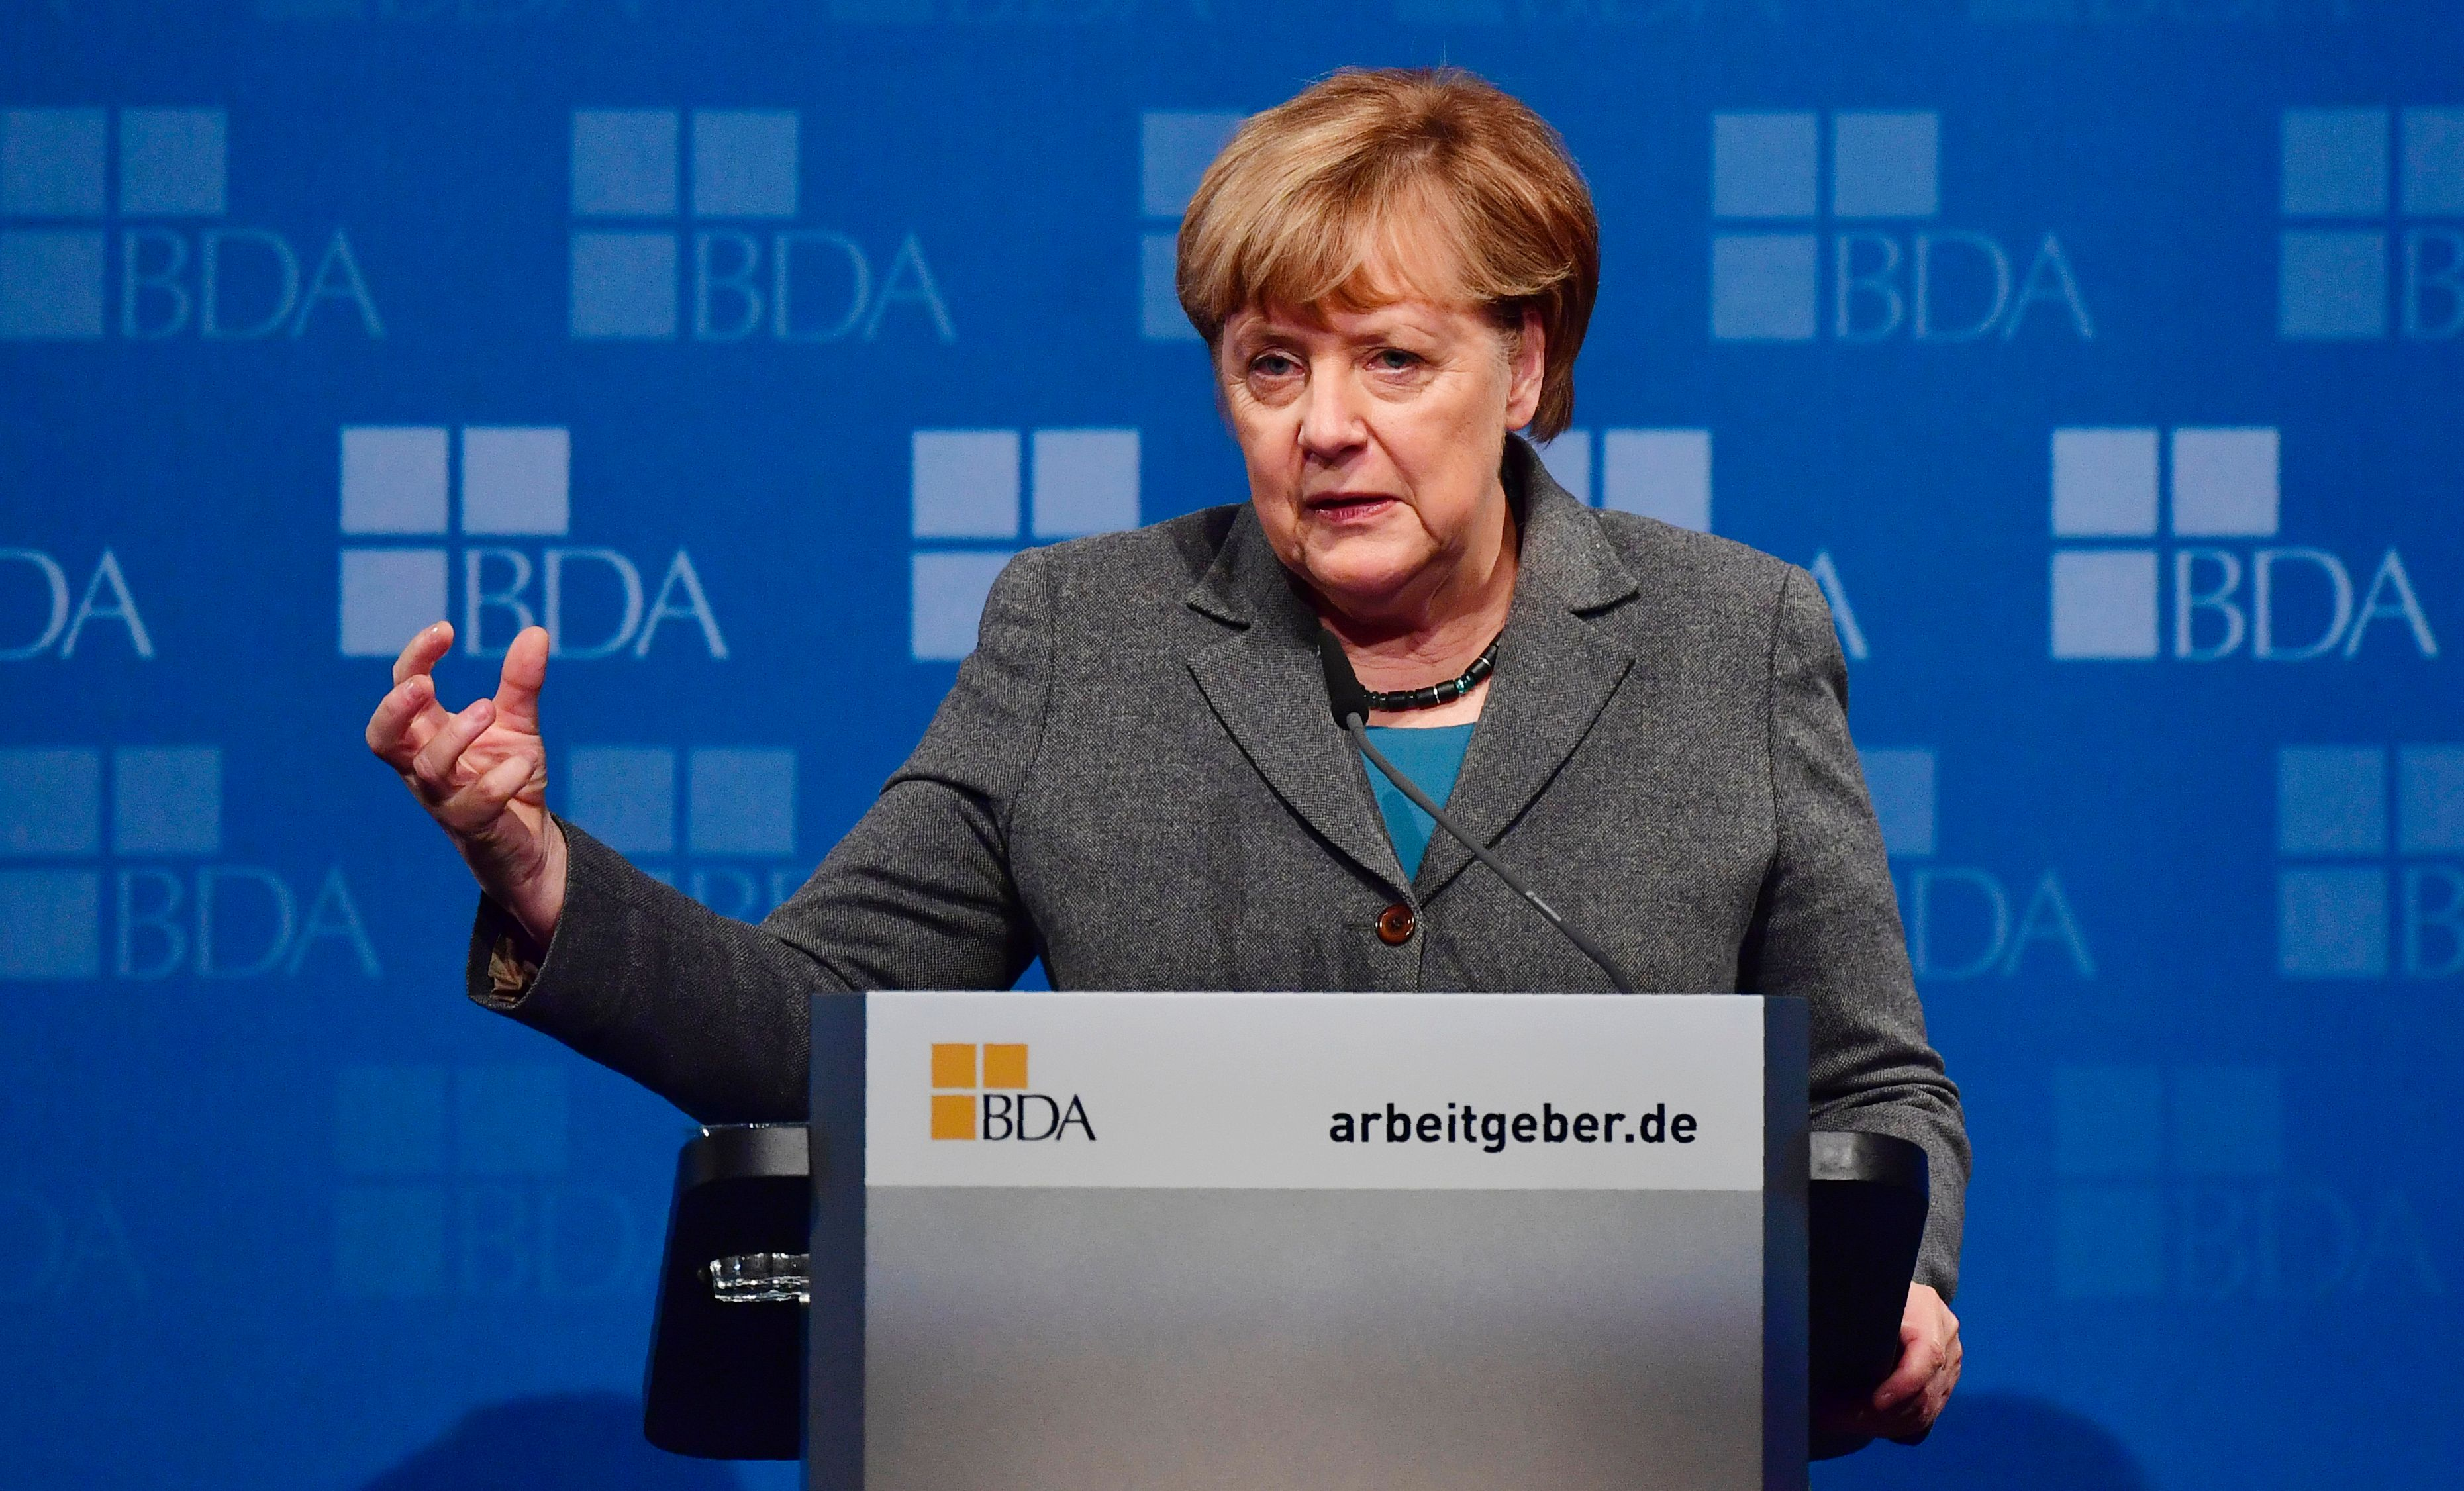 Merkel, with nod to Trump, warns against protectionism